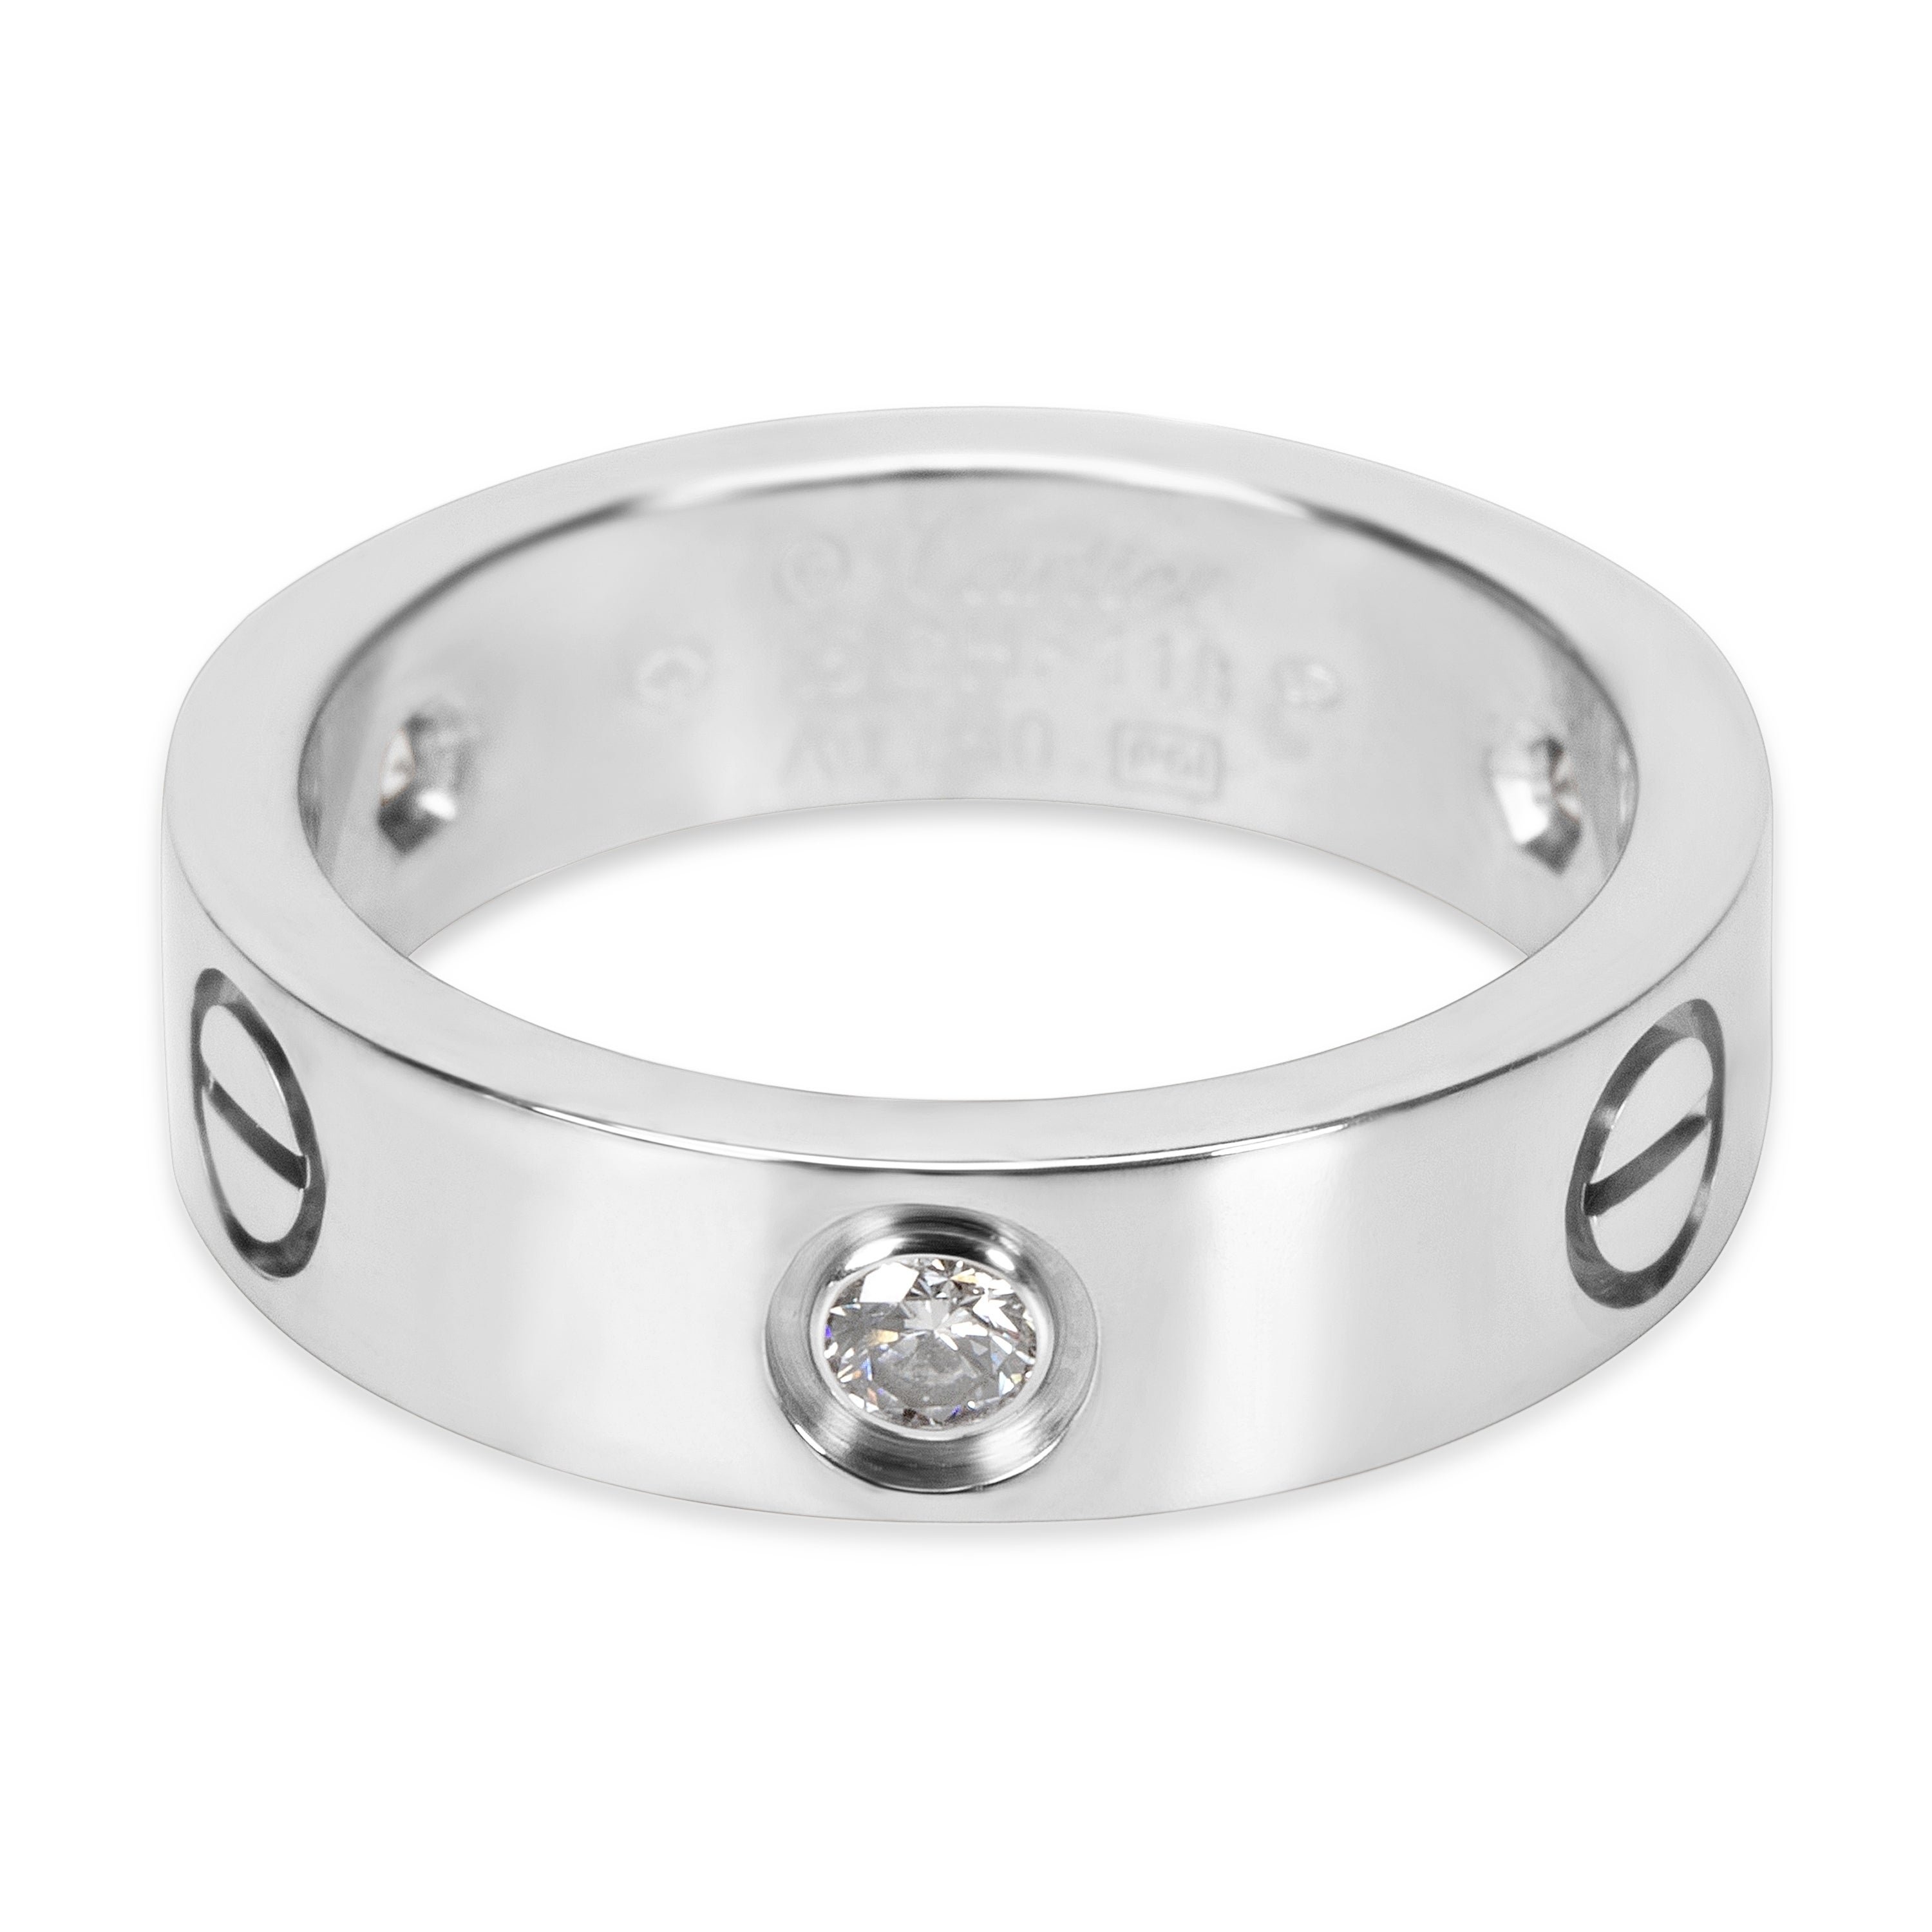 f0a9184ecf48d Shop Pre-Owned Cartier Diamond Love Ring in 18K White Gold (0.22 CTW) -  Free Shipping Today - Overstock - 23056024